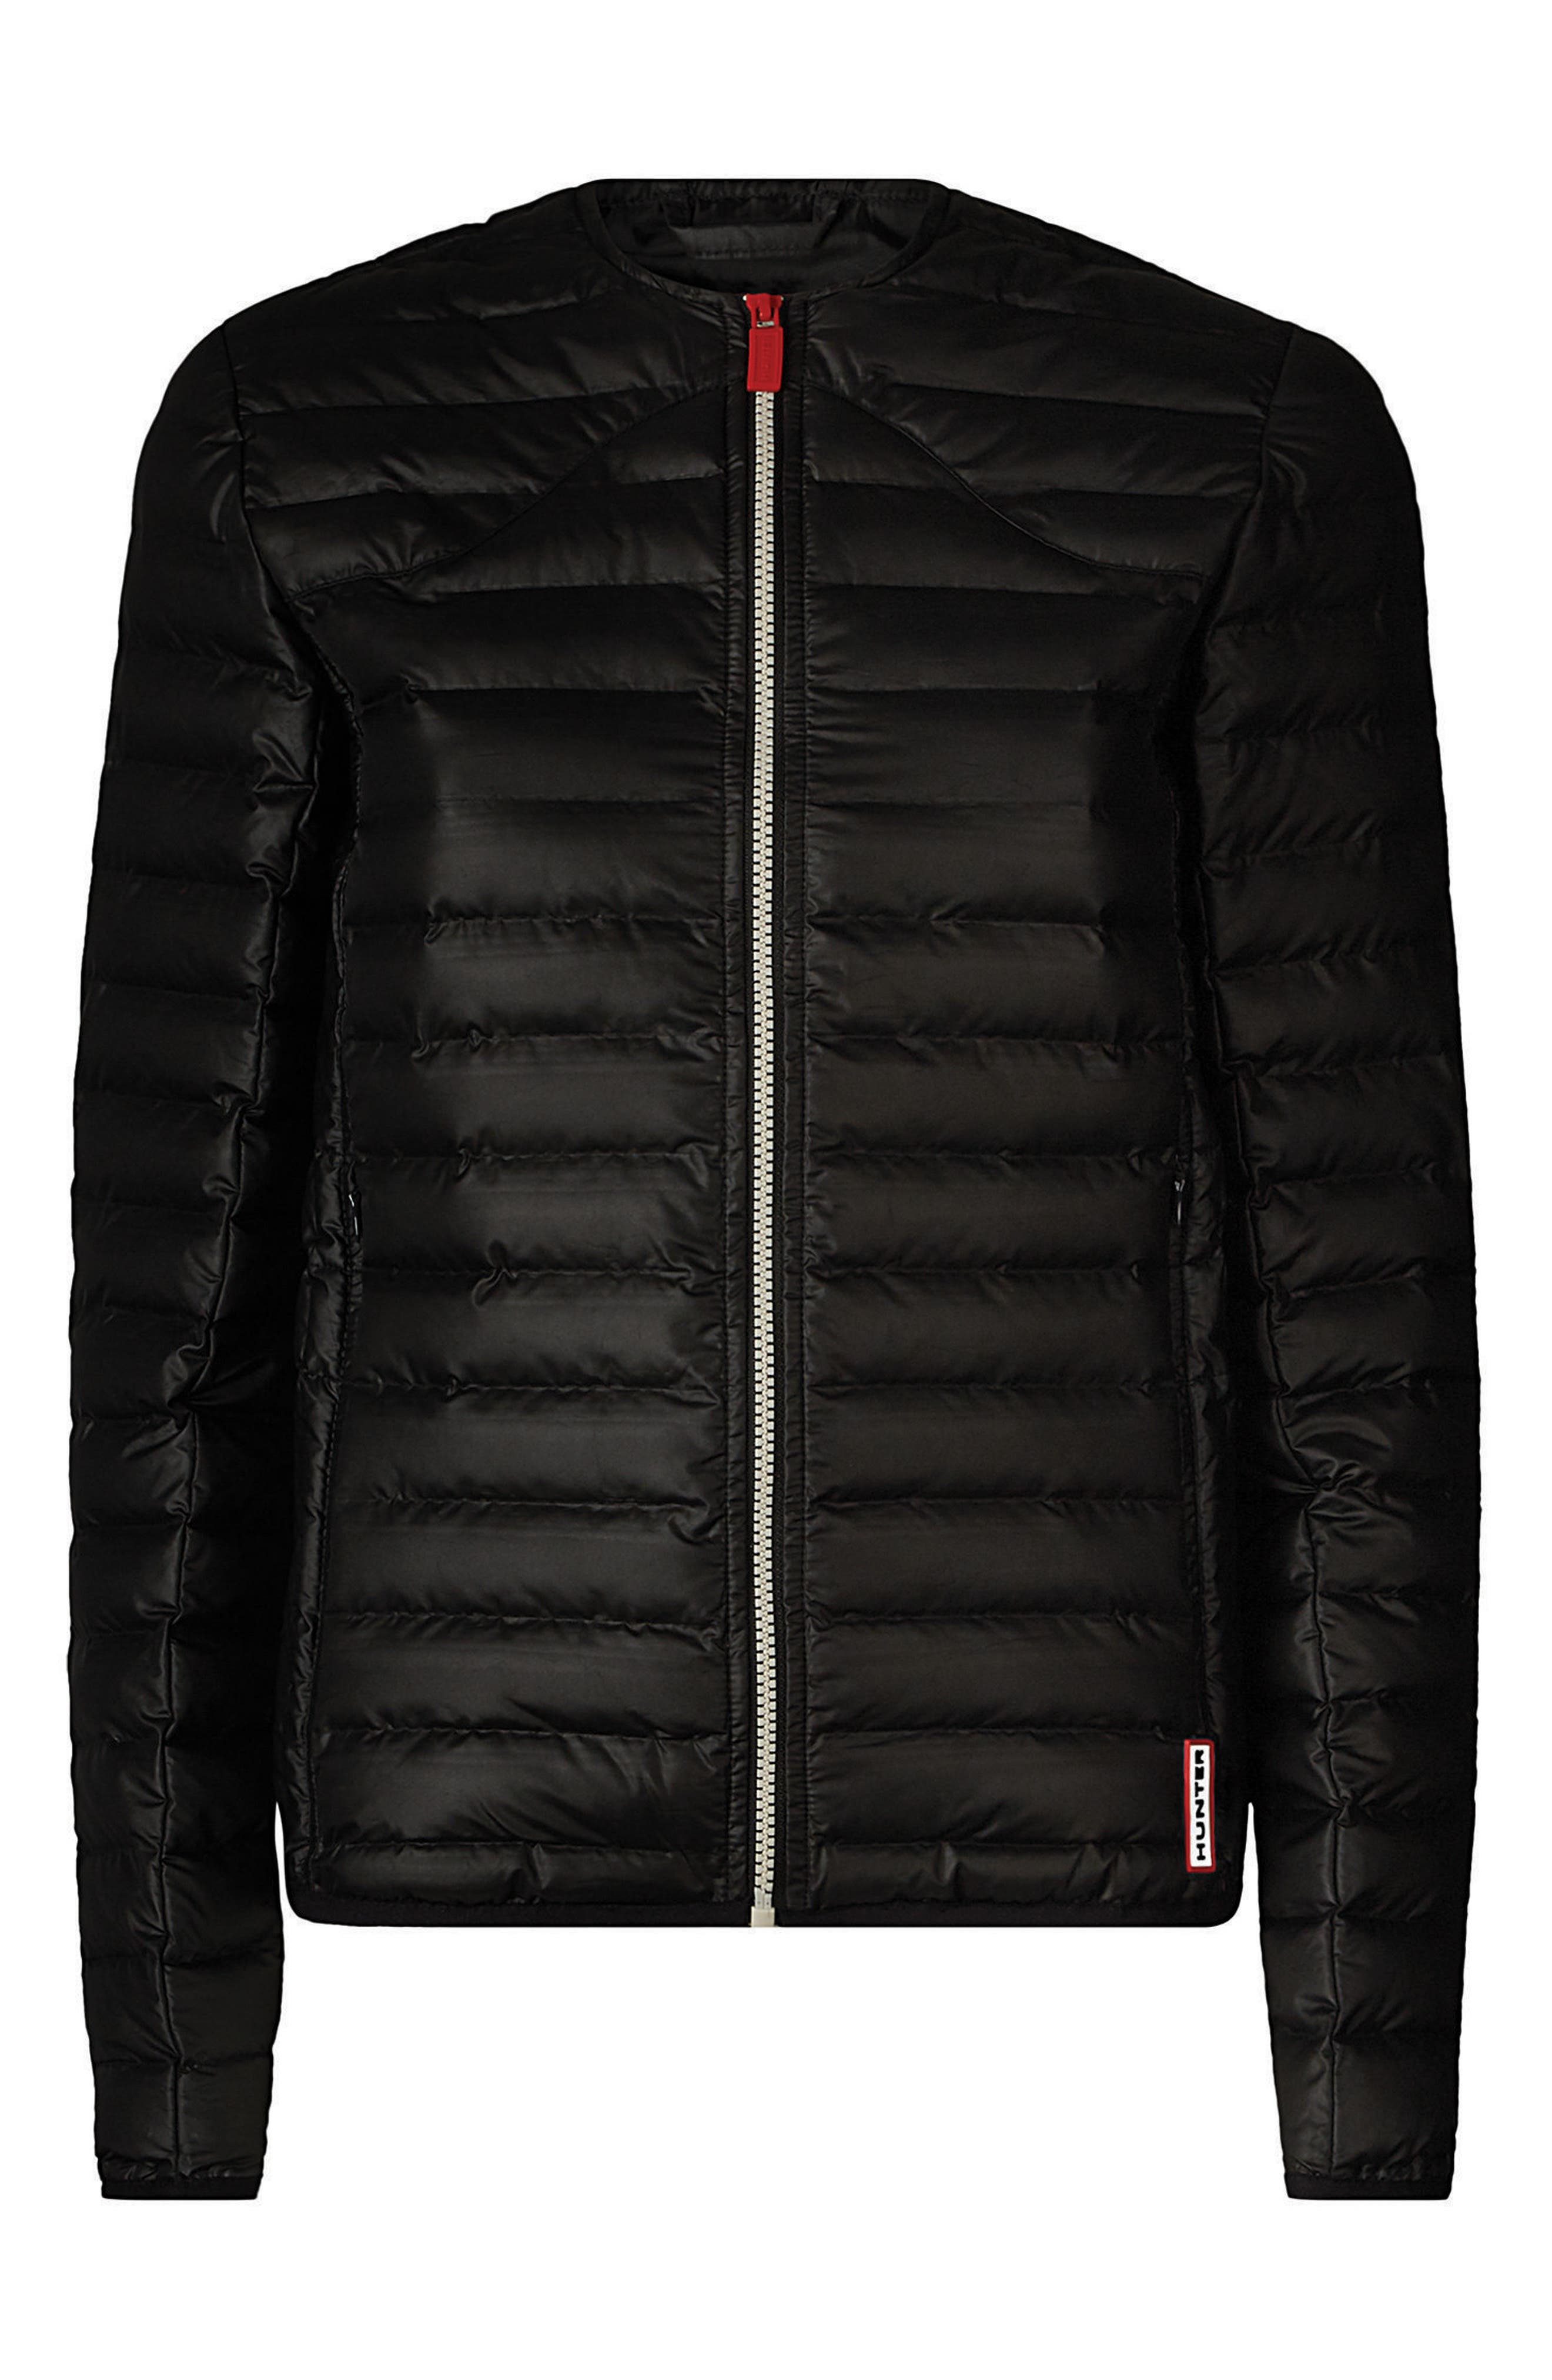 Original Midlayer Water Resistant Thermolite<sup>®</sup> Insulated Jacket,                             Alternate thumbnail 3, color,                             001